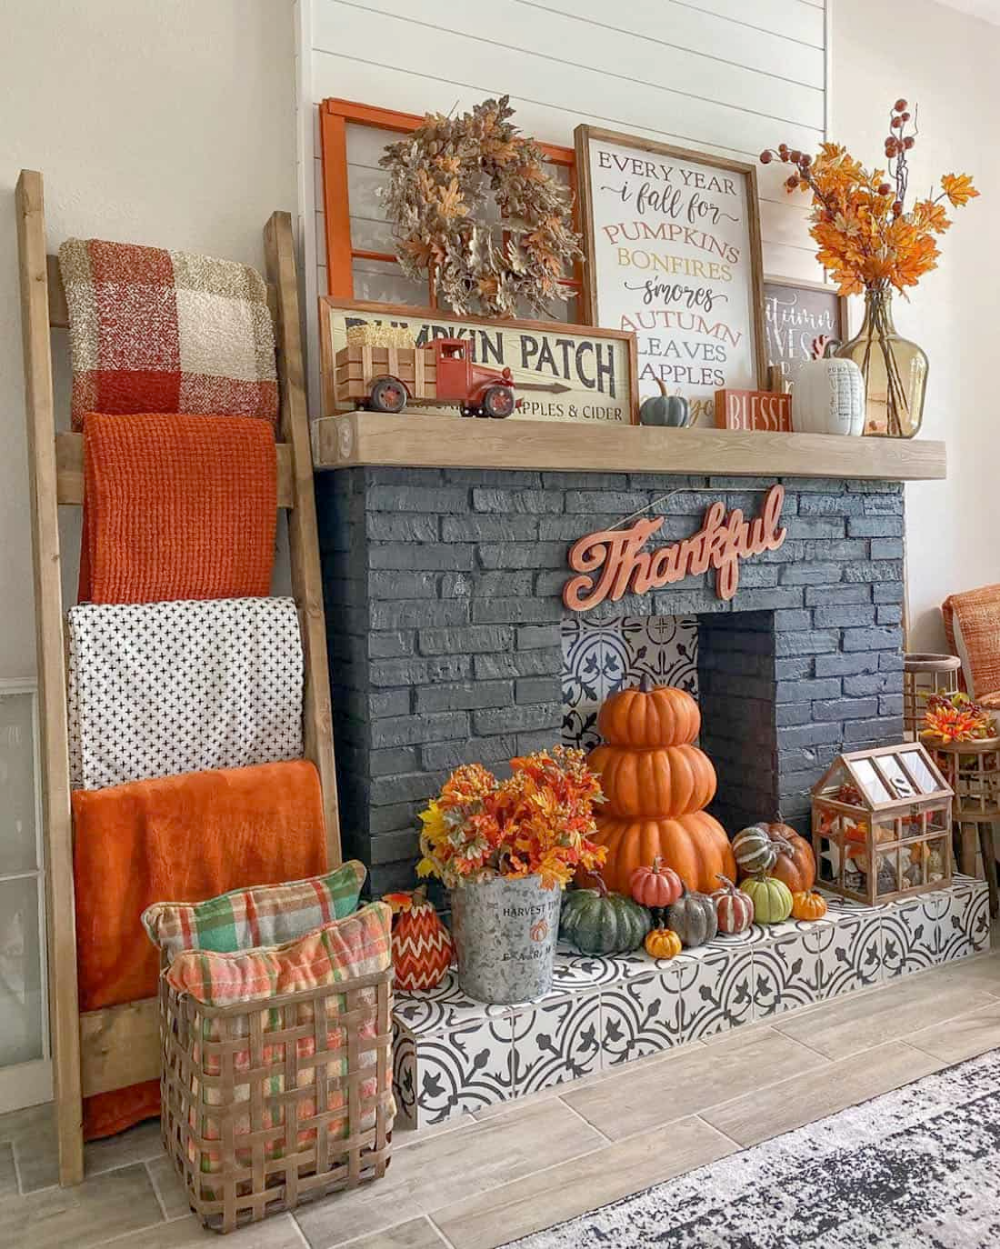 Fall inspired mantel black brick fireplace with orange, green, red pumpkins. and sign that reads Thankful and fall colored leaves oranges and reds in vases and a vintage can. Different shades of oranges blankets on a ladder hanger.